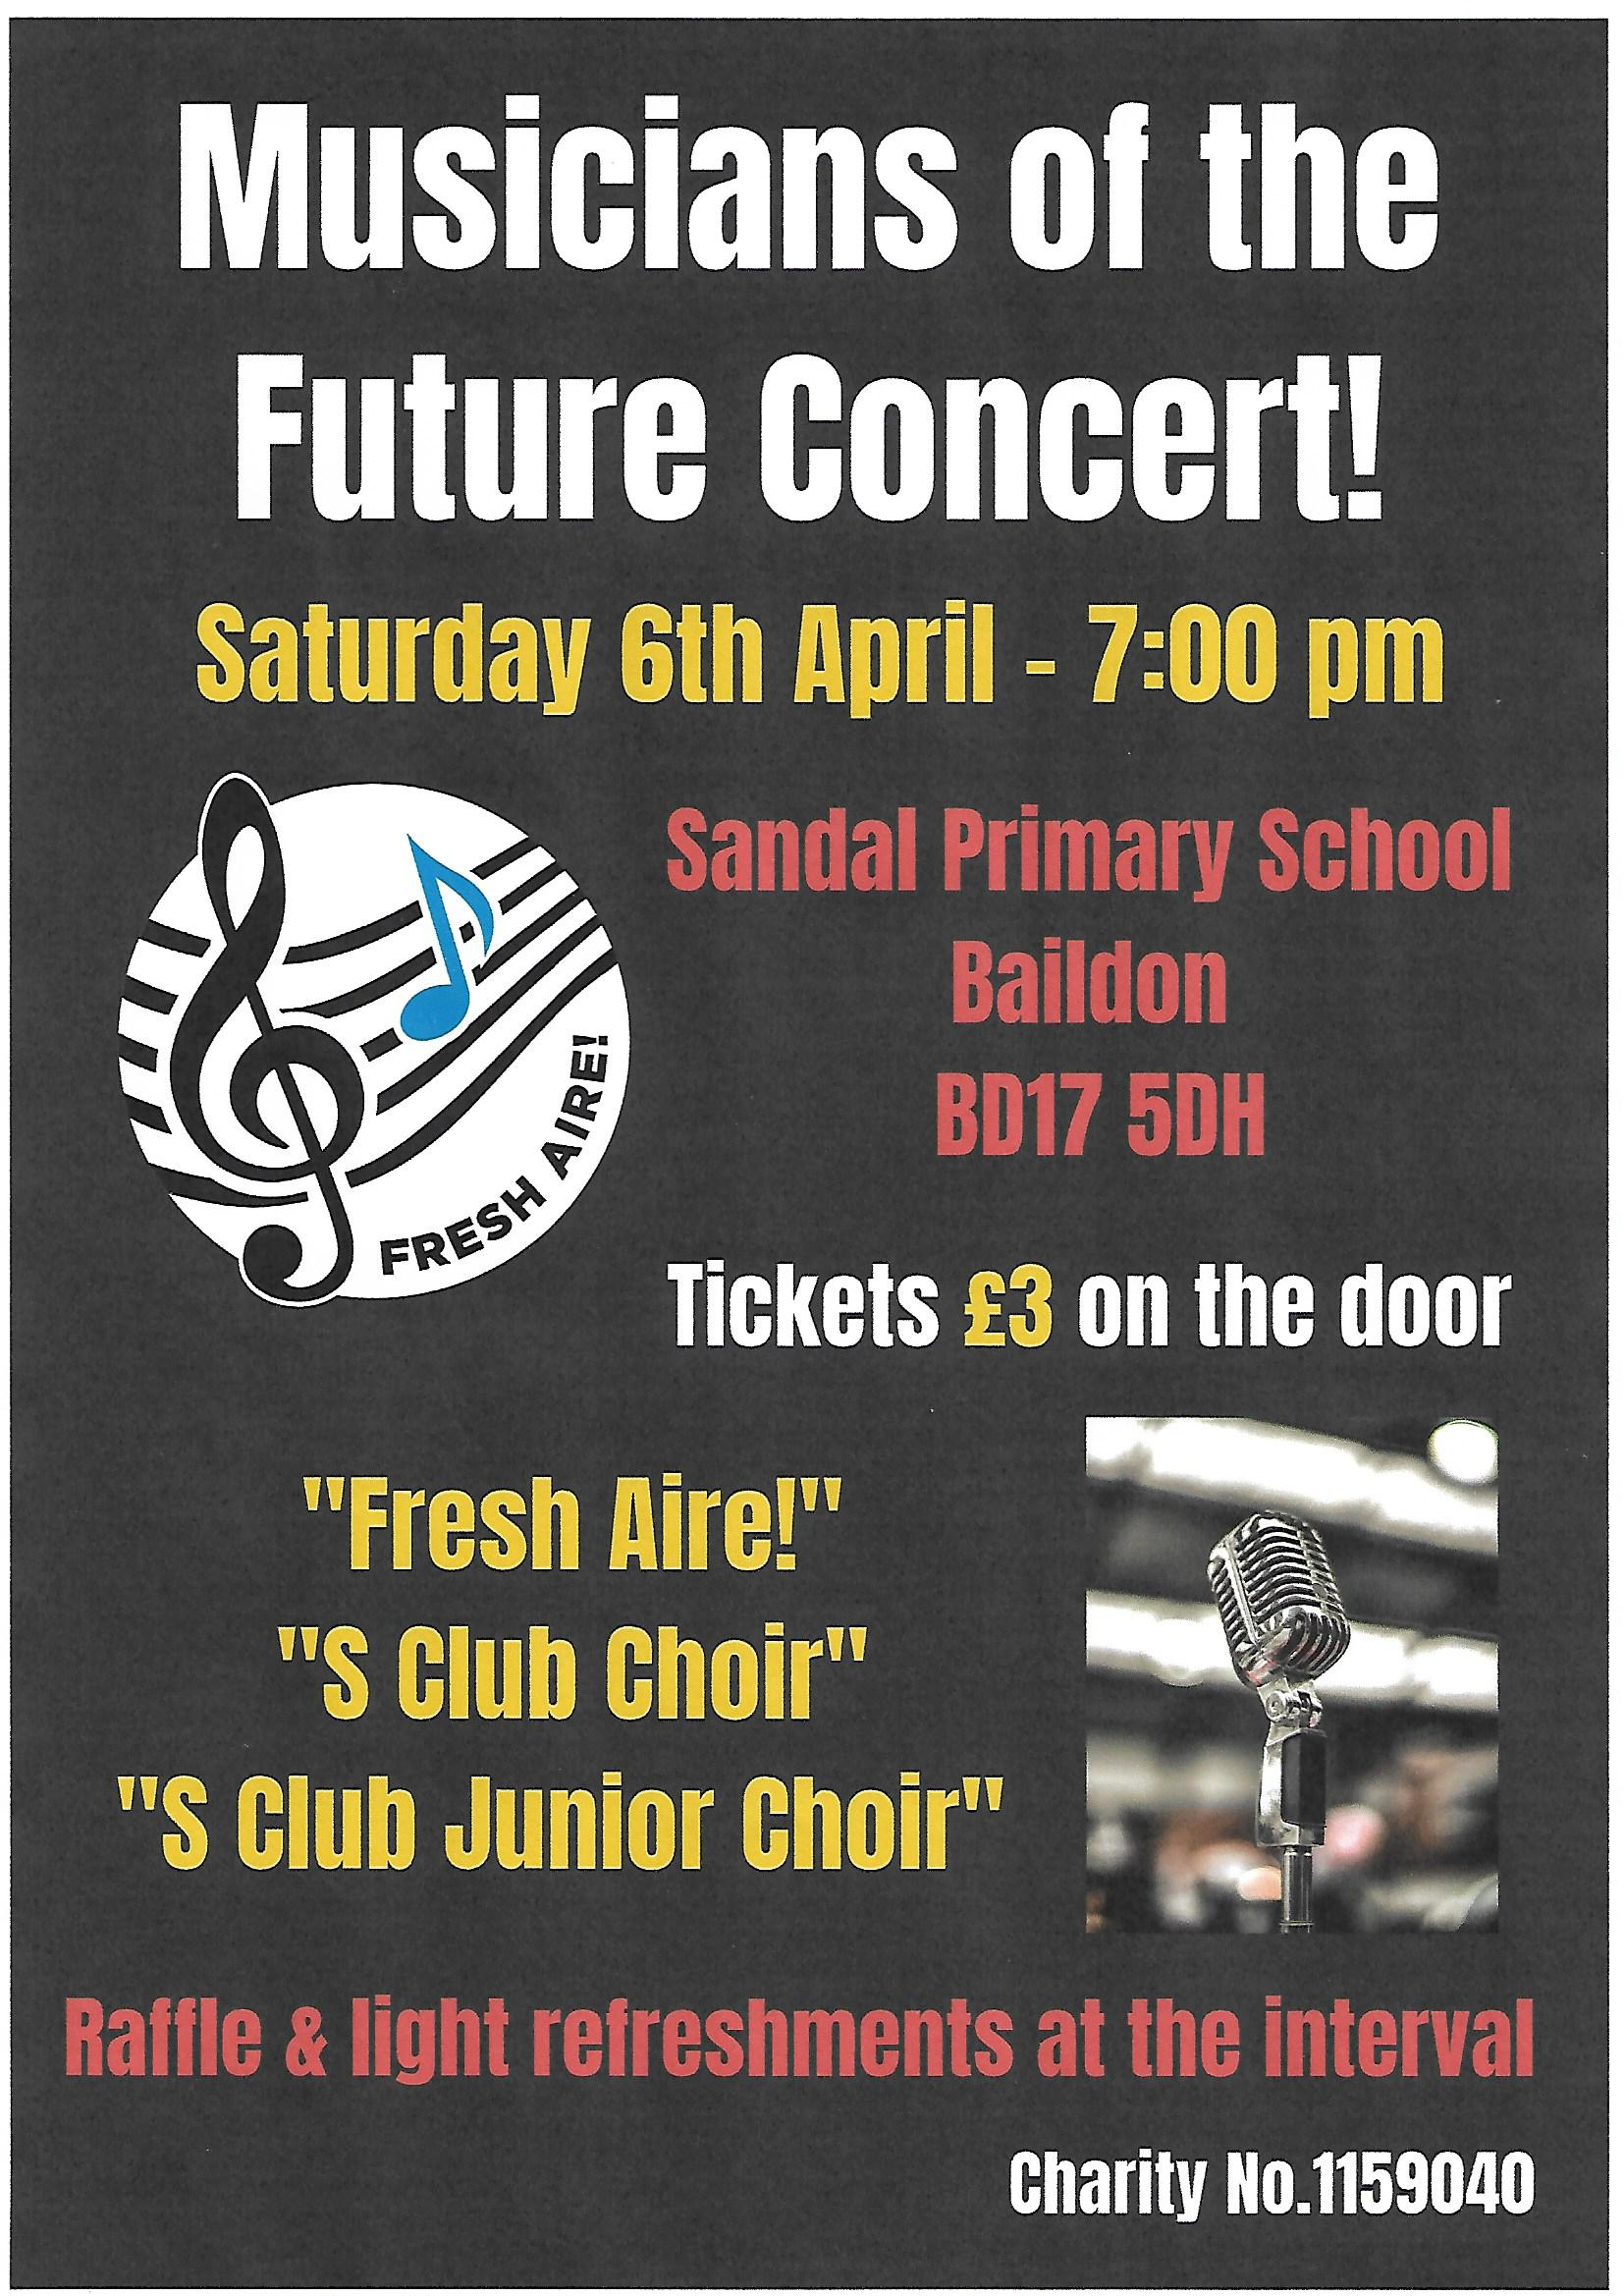 Musicians of the Future Concert!